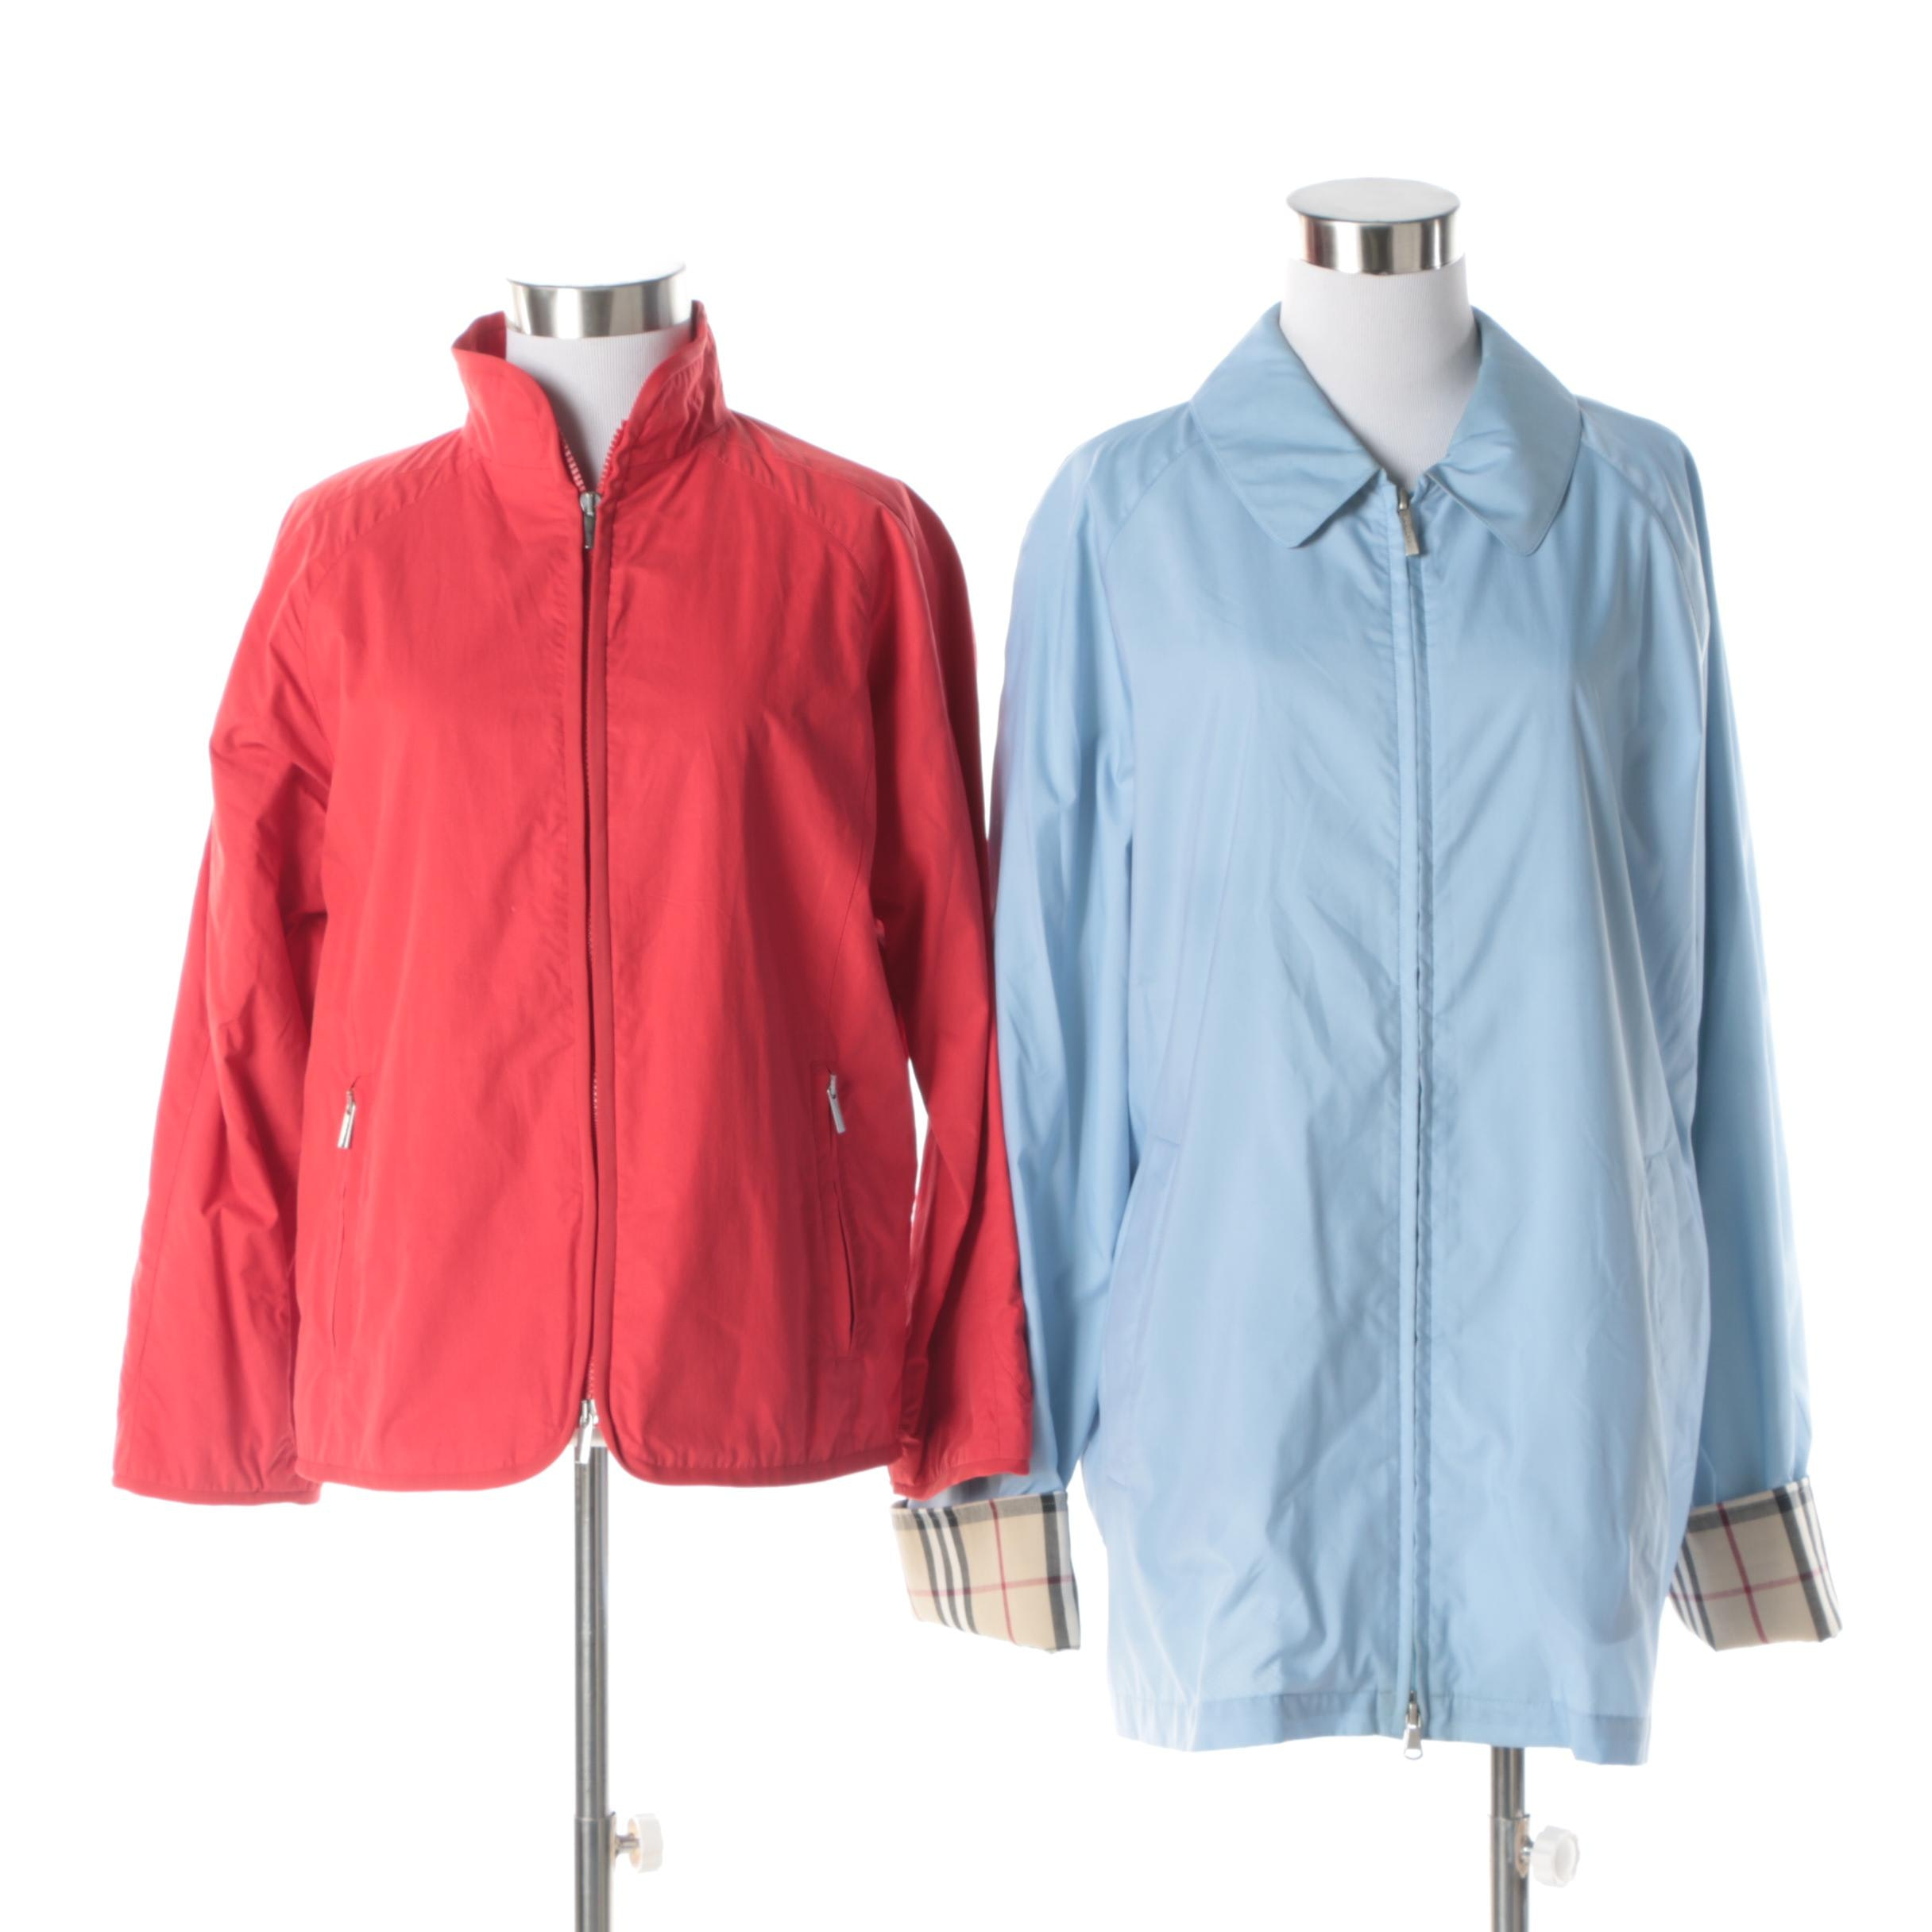 Women's Giorgio Armani and Burberry Rain Jackets